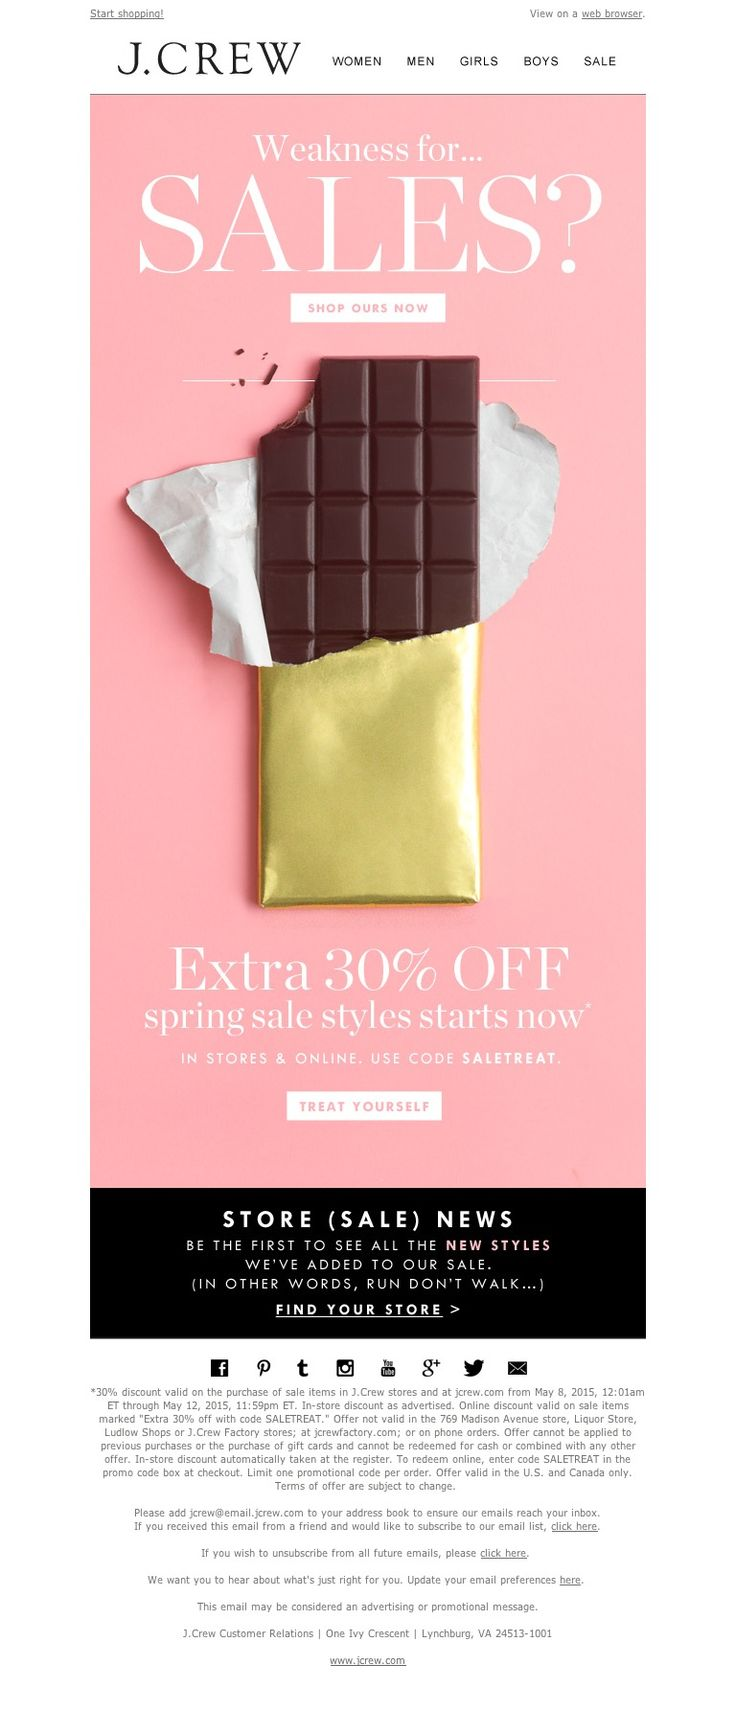 J.Crew - It's back. The Even Sweeter Sale (extra 30% off spring sale styles) starts now. Plus, there are n...